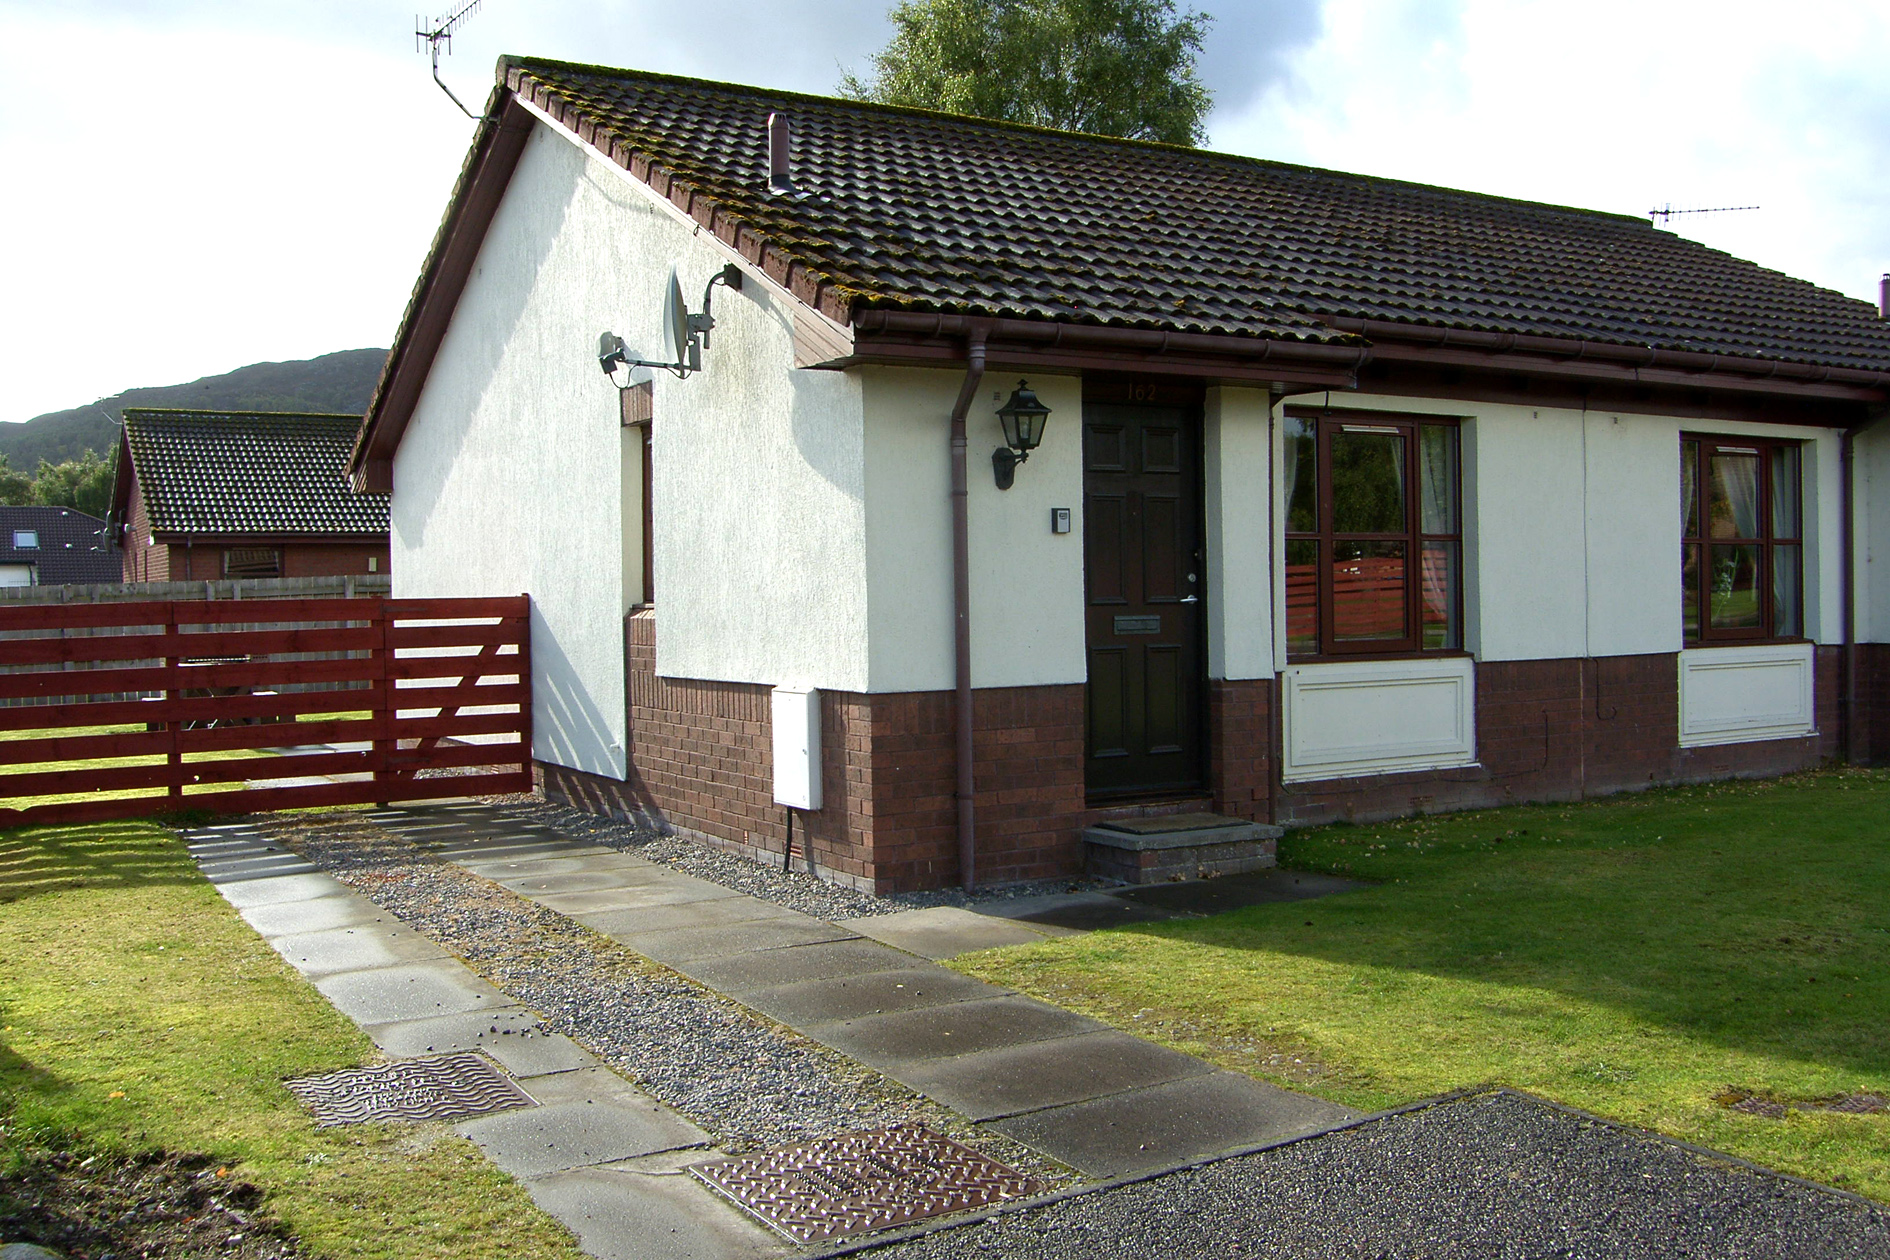 1 Bedroom Semi Detached House for sale in Aviemore, PH22 1TD